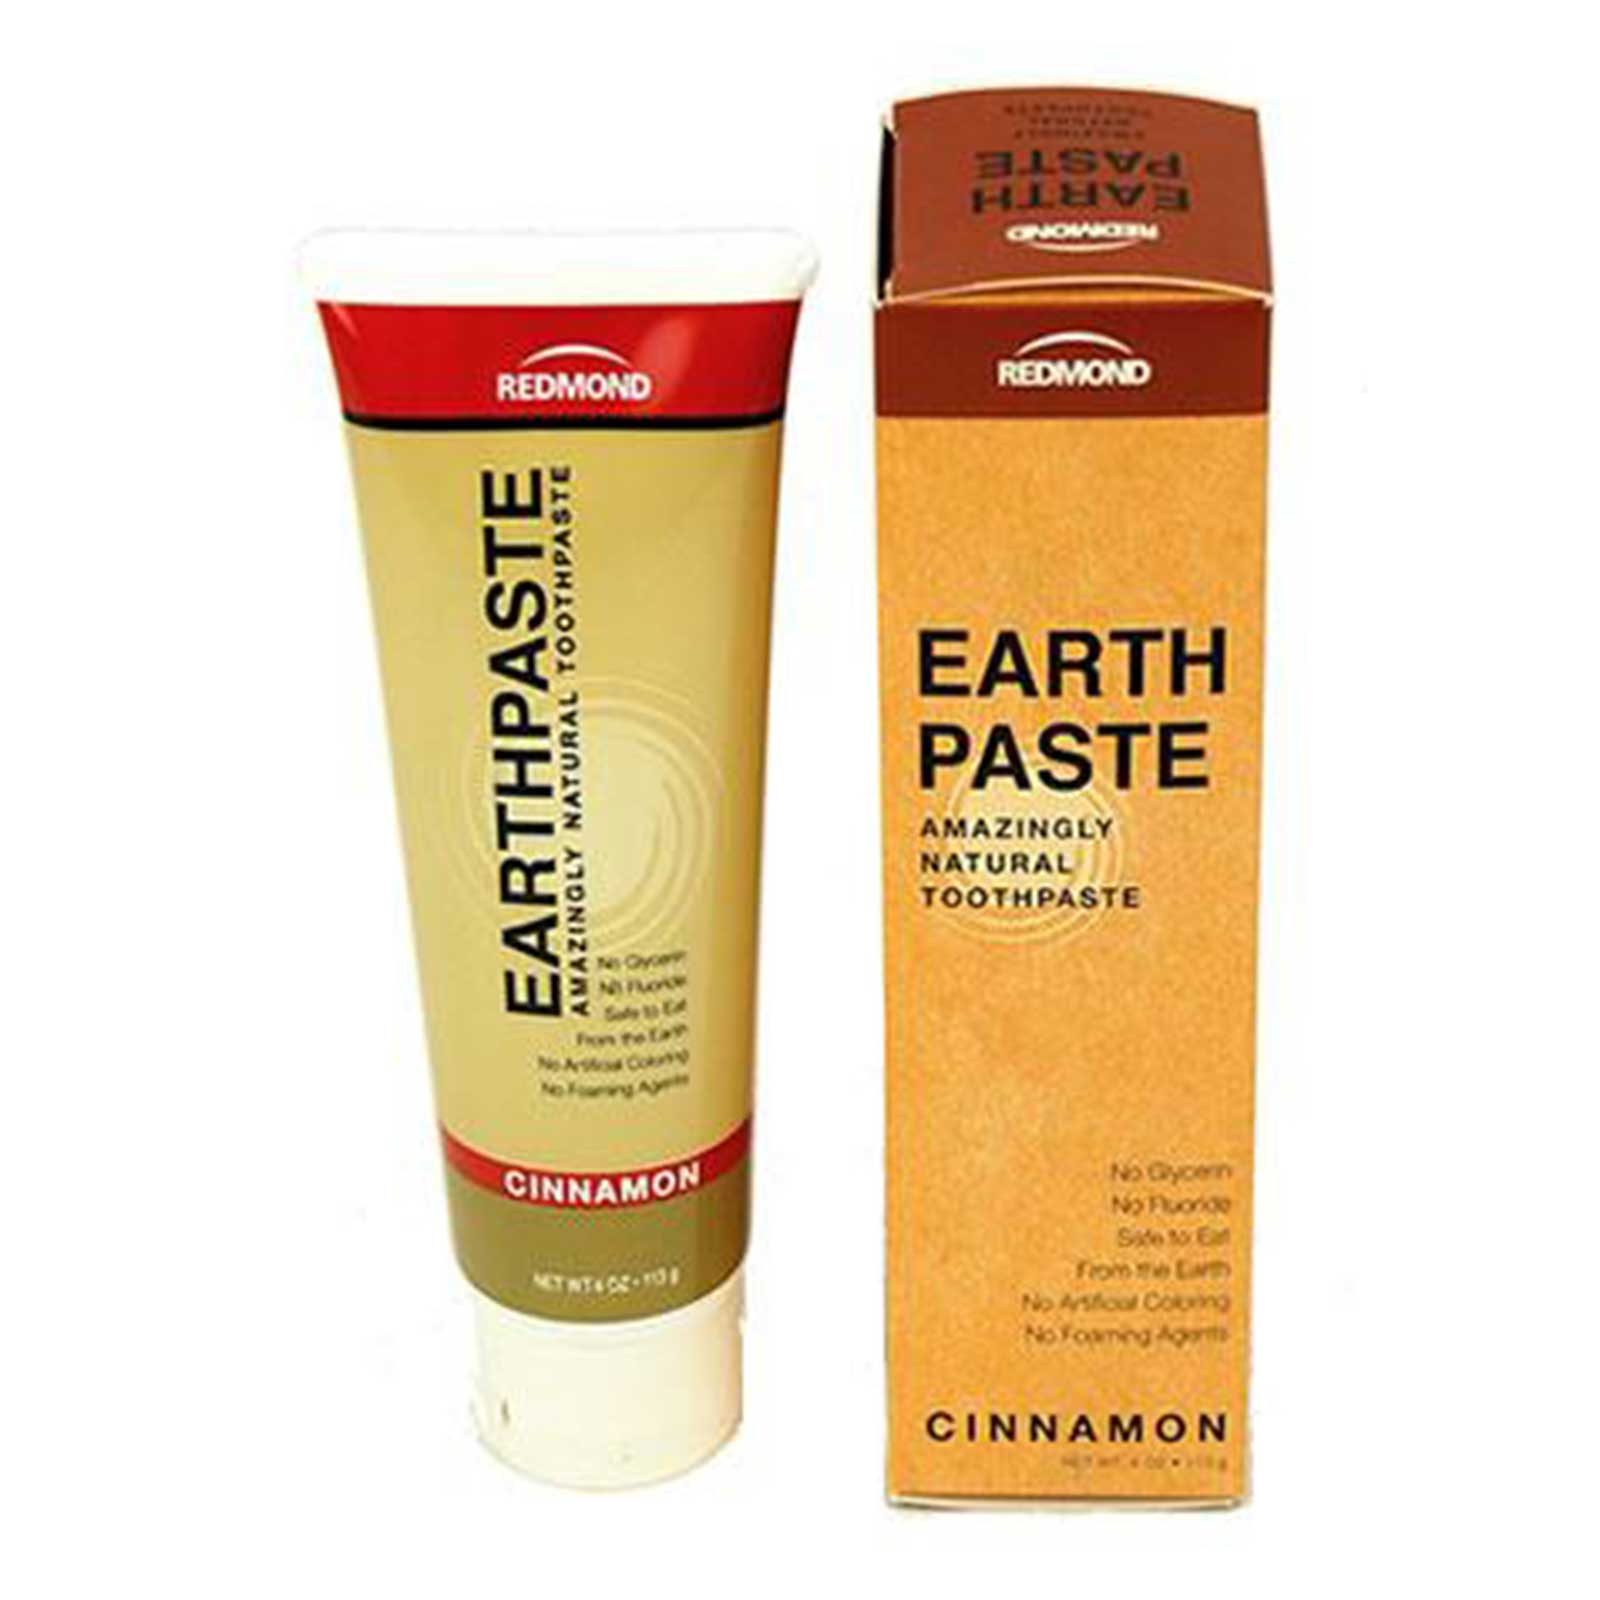 Earthpaste by Redmond - All Natural Toothpaste - 4 Oz. - Cinnamon